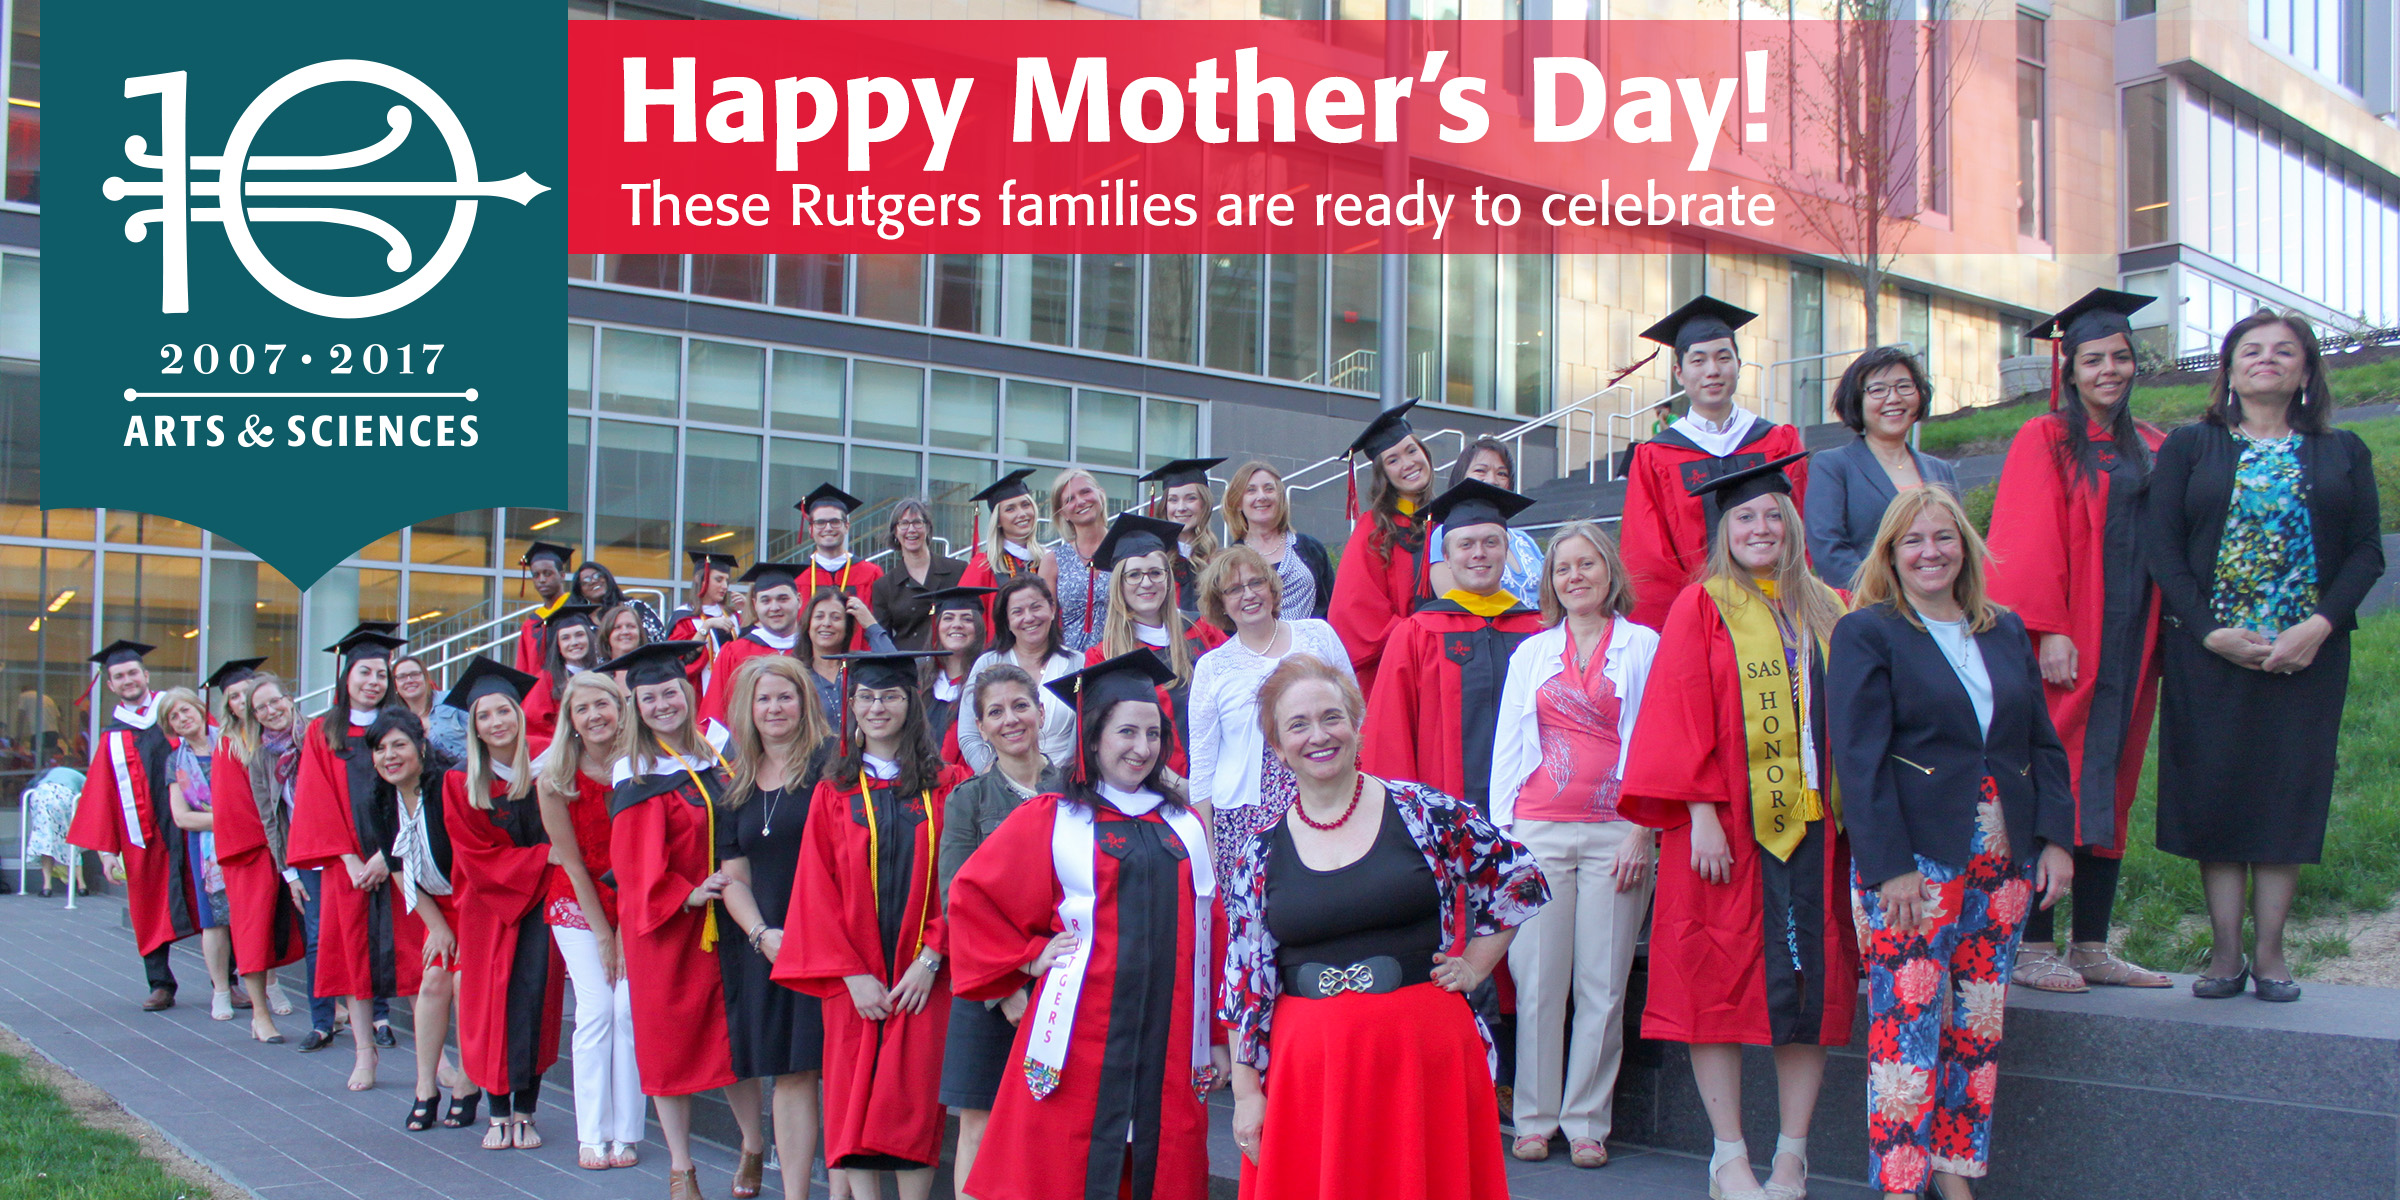 These Rutgers families are ready to celebrate!